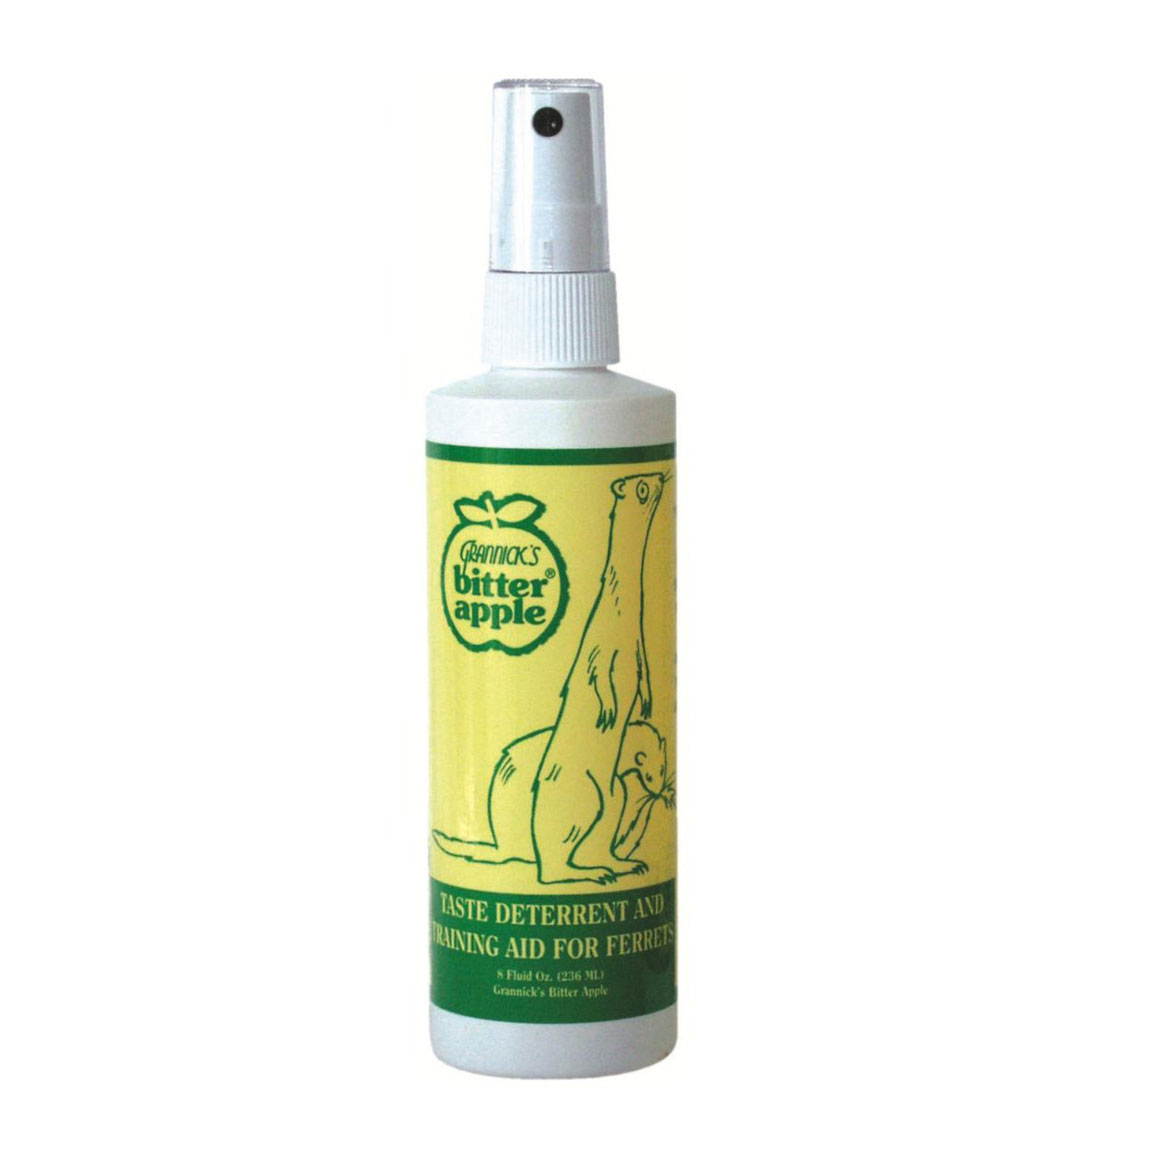 Taste Deterrent for Ferrets Spray